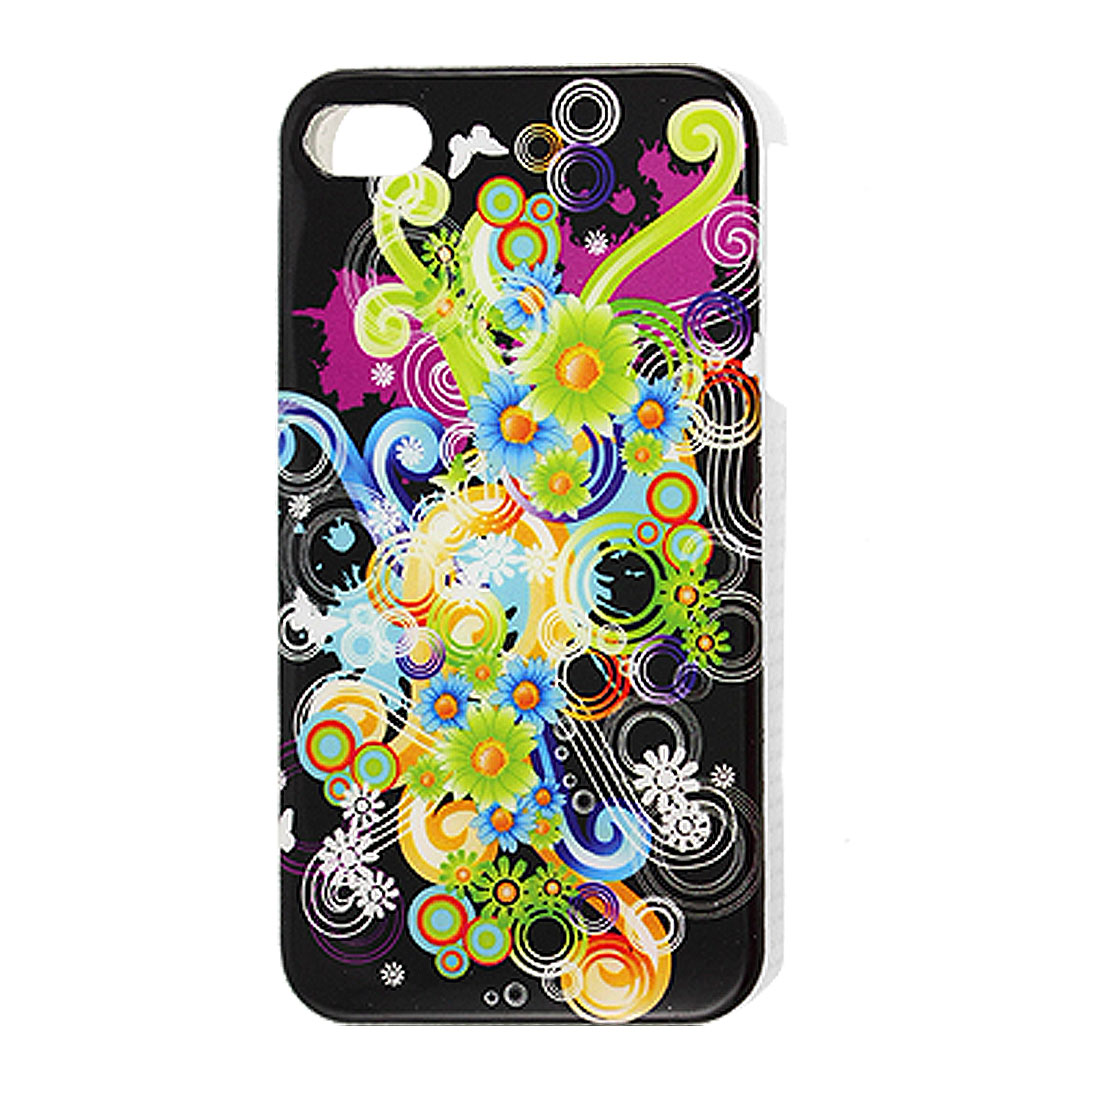 Colorful Floral Bubbles Pattern Hard Plastic IMD Back Case for iPhone 4 4G 4S